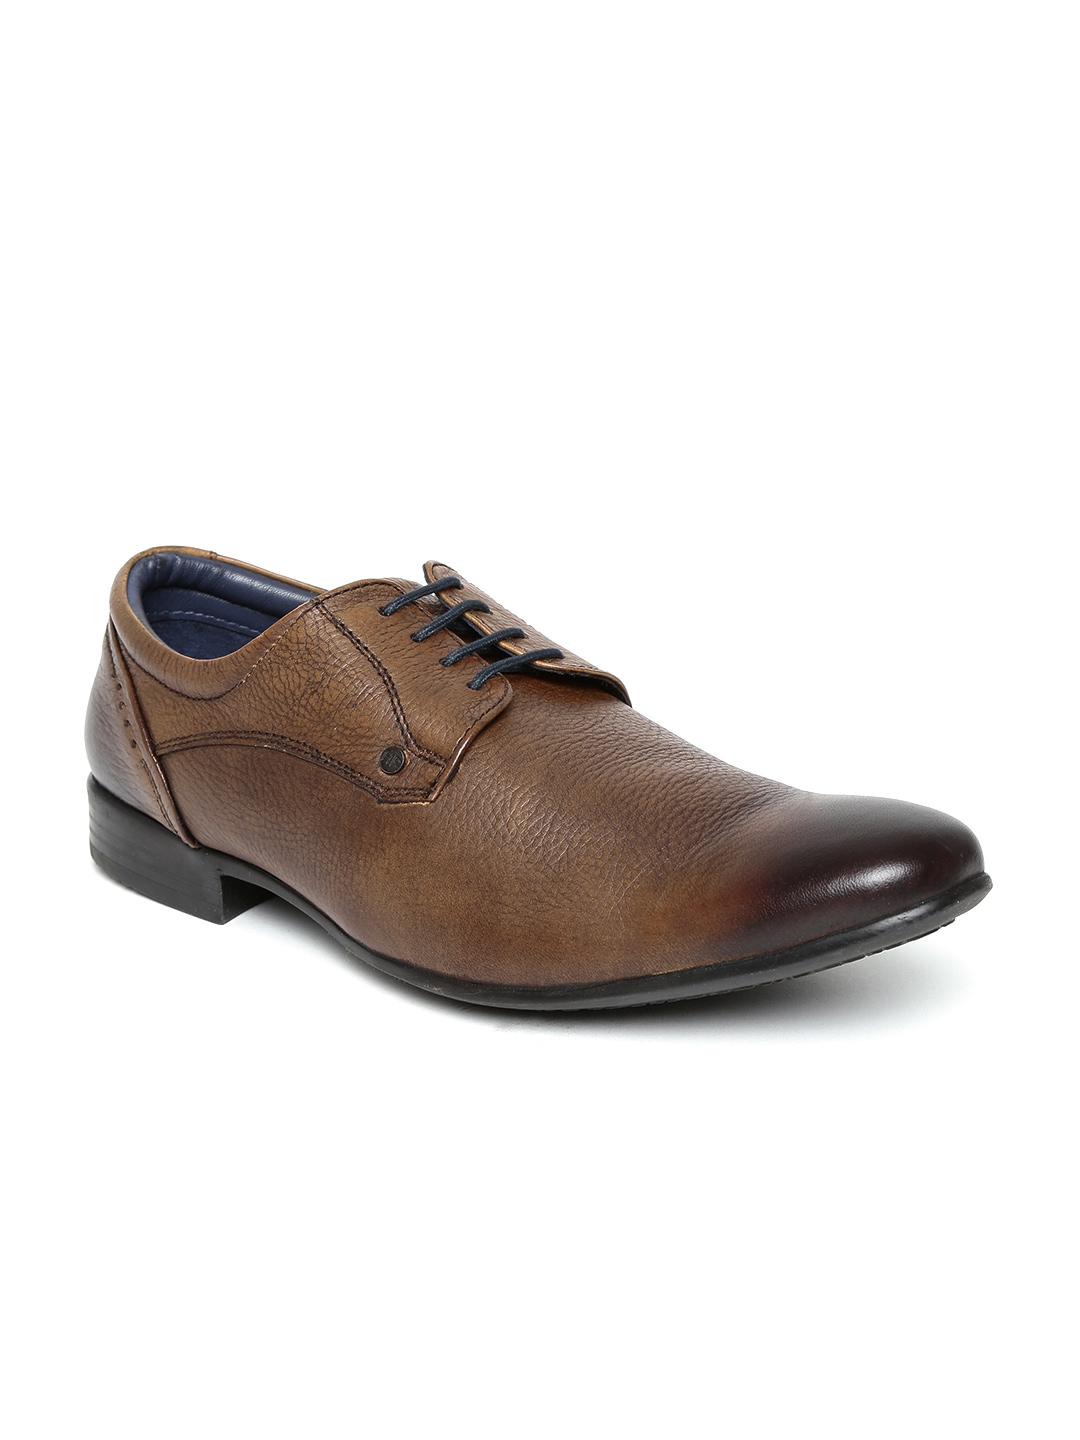 myntra hush puppies by bata brown leather formal shoes